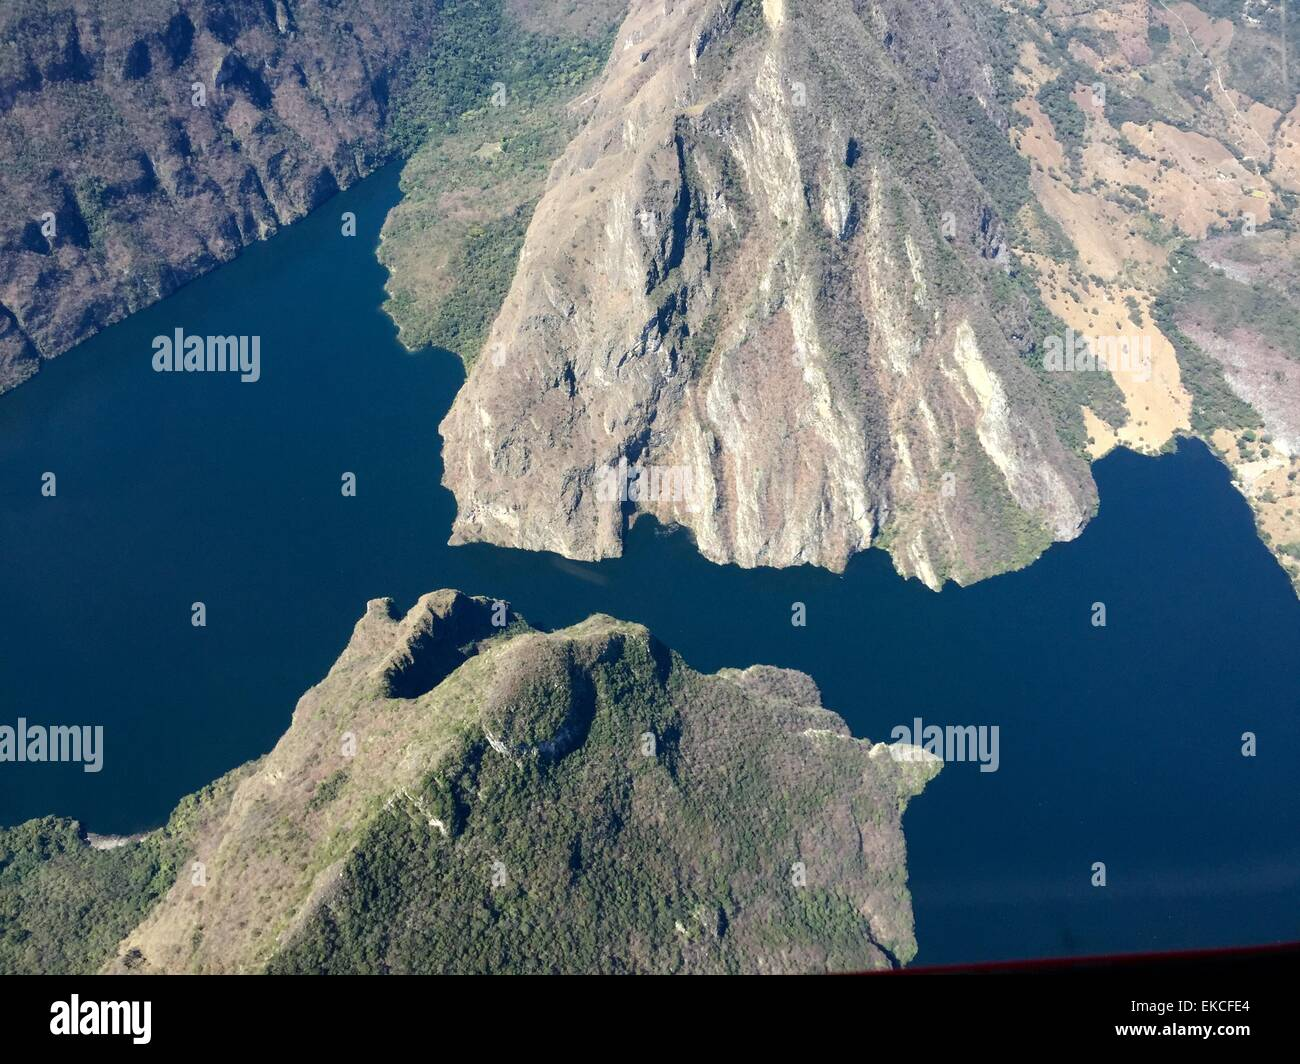 Aerial view of Sumidero Canon, Mexico - Stock Image